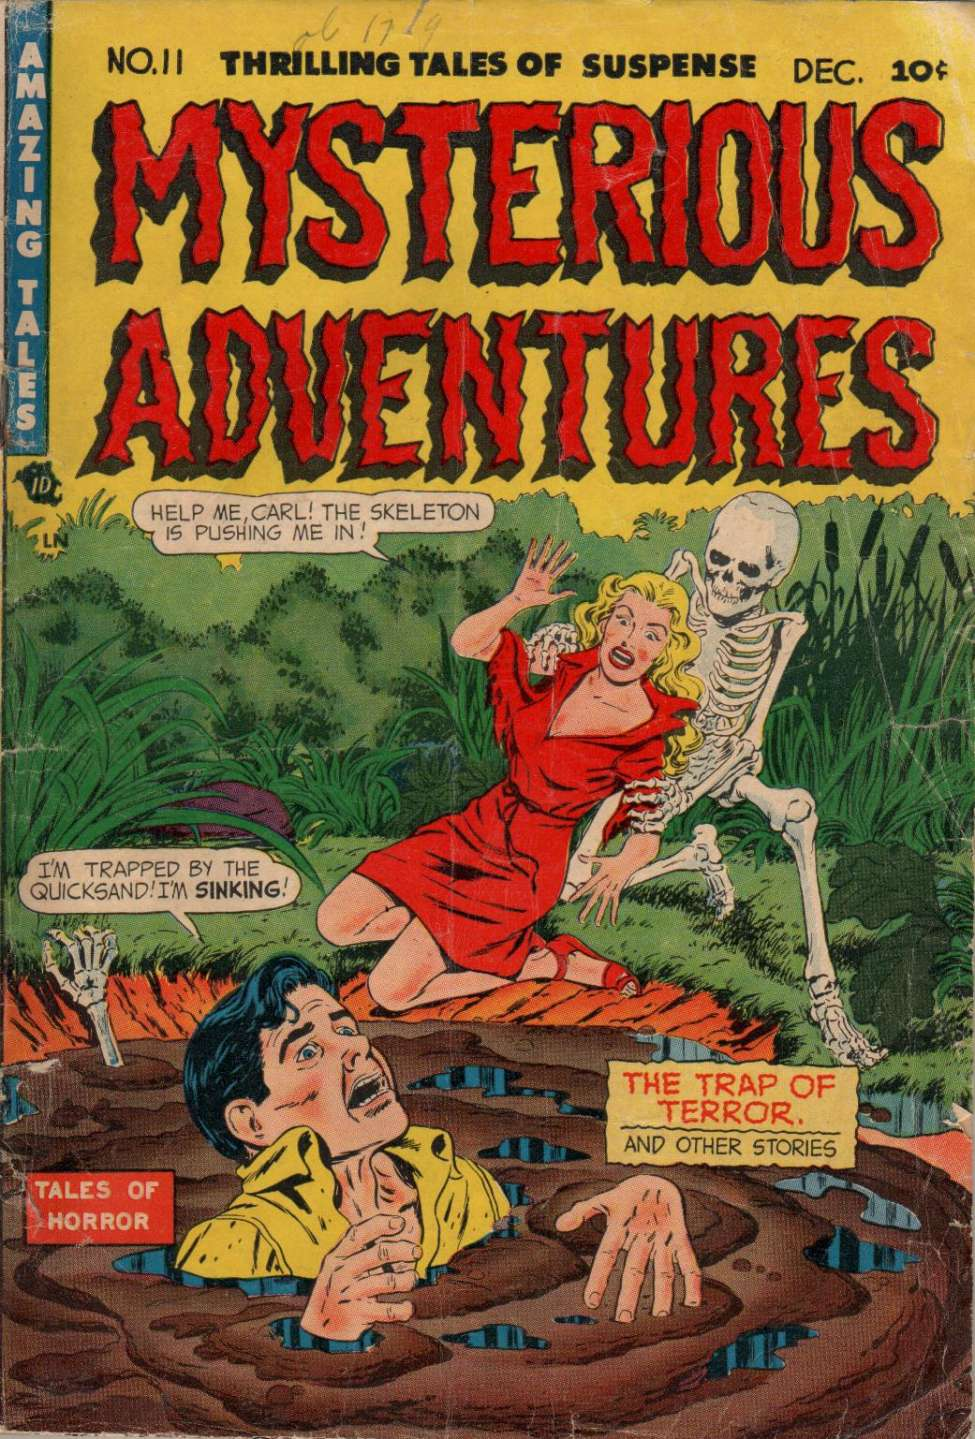 Mysterious Adventures #11, Story